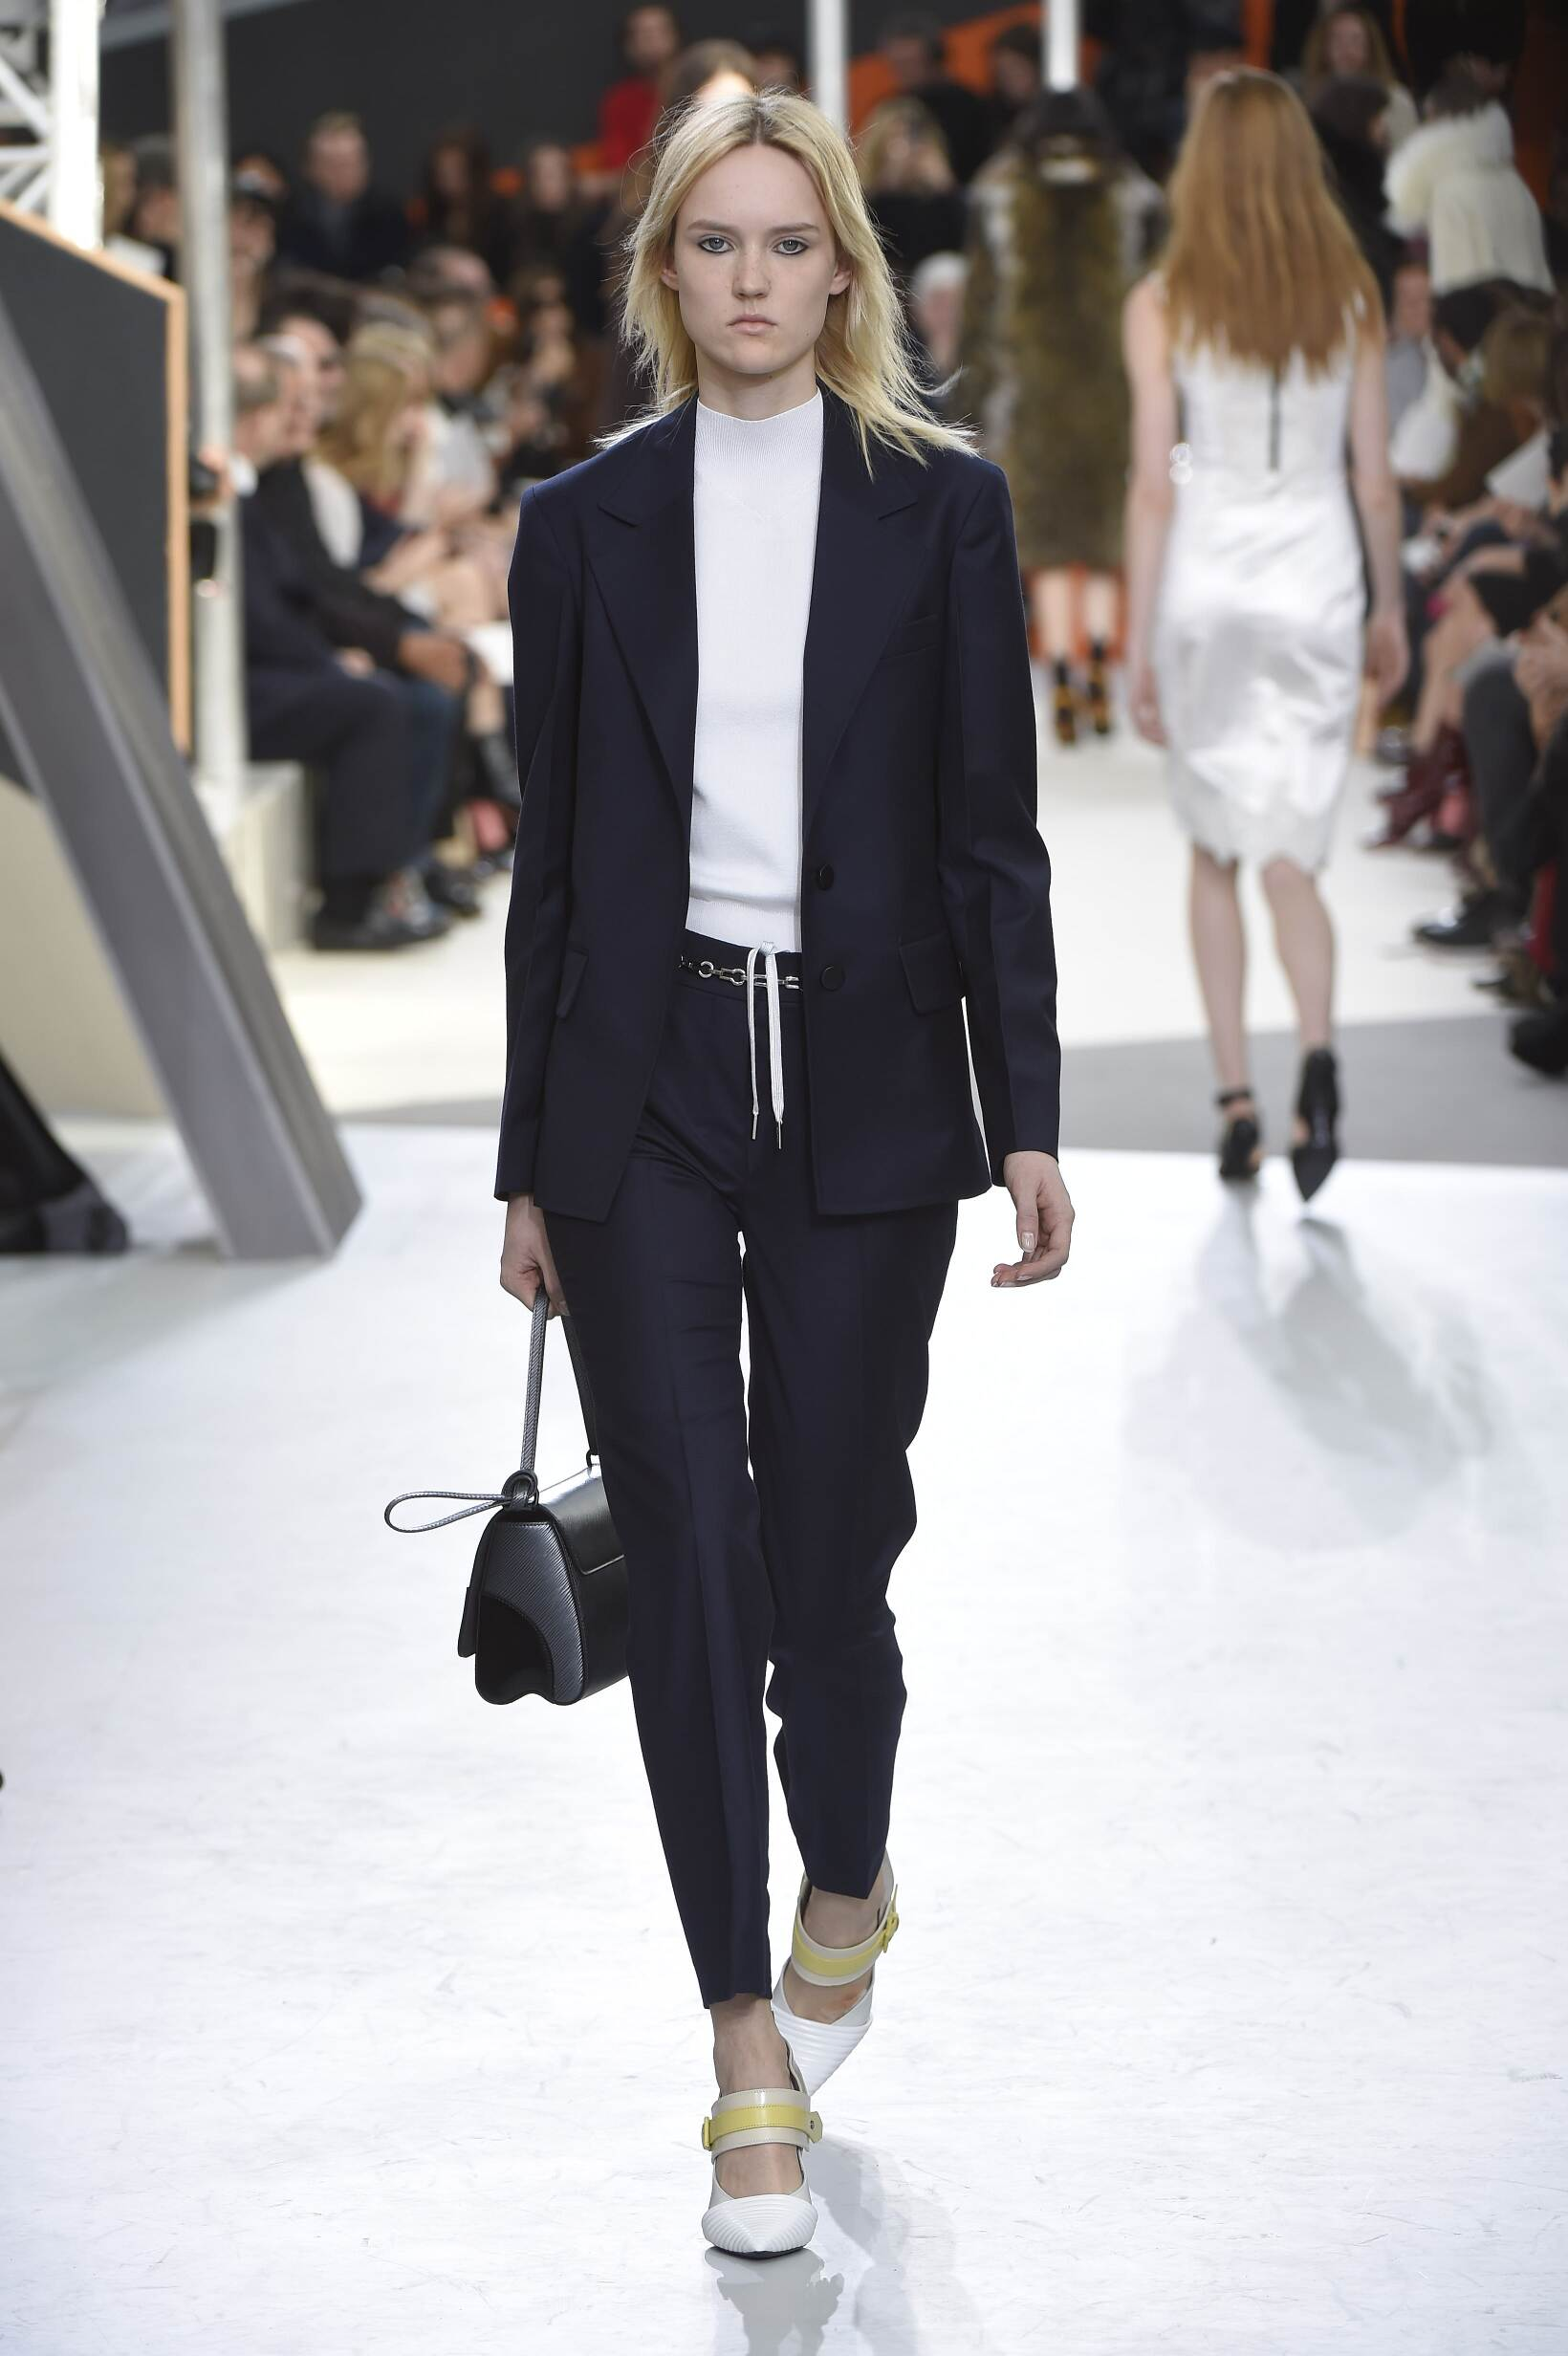 Fashion Womenswear Louis Vuitton Collection Catwalk